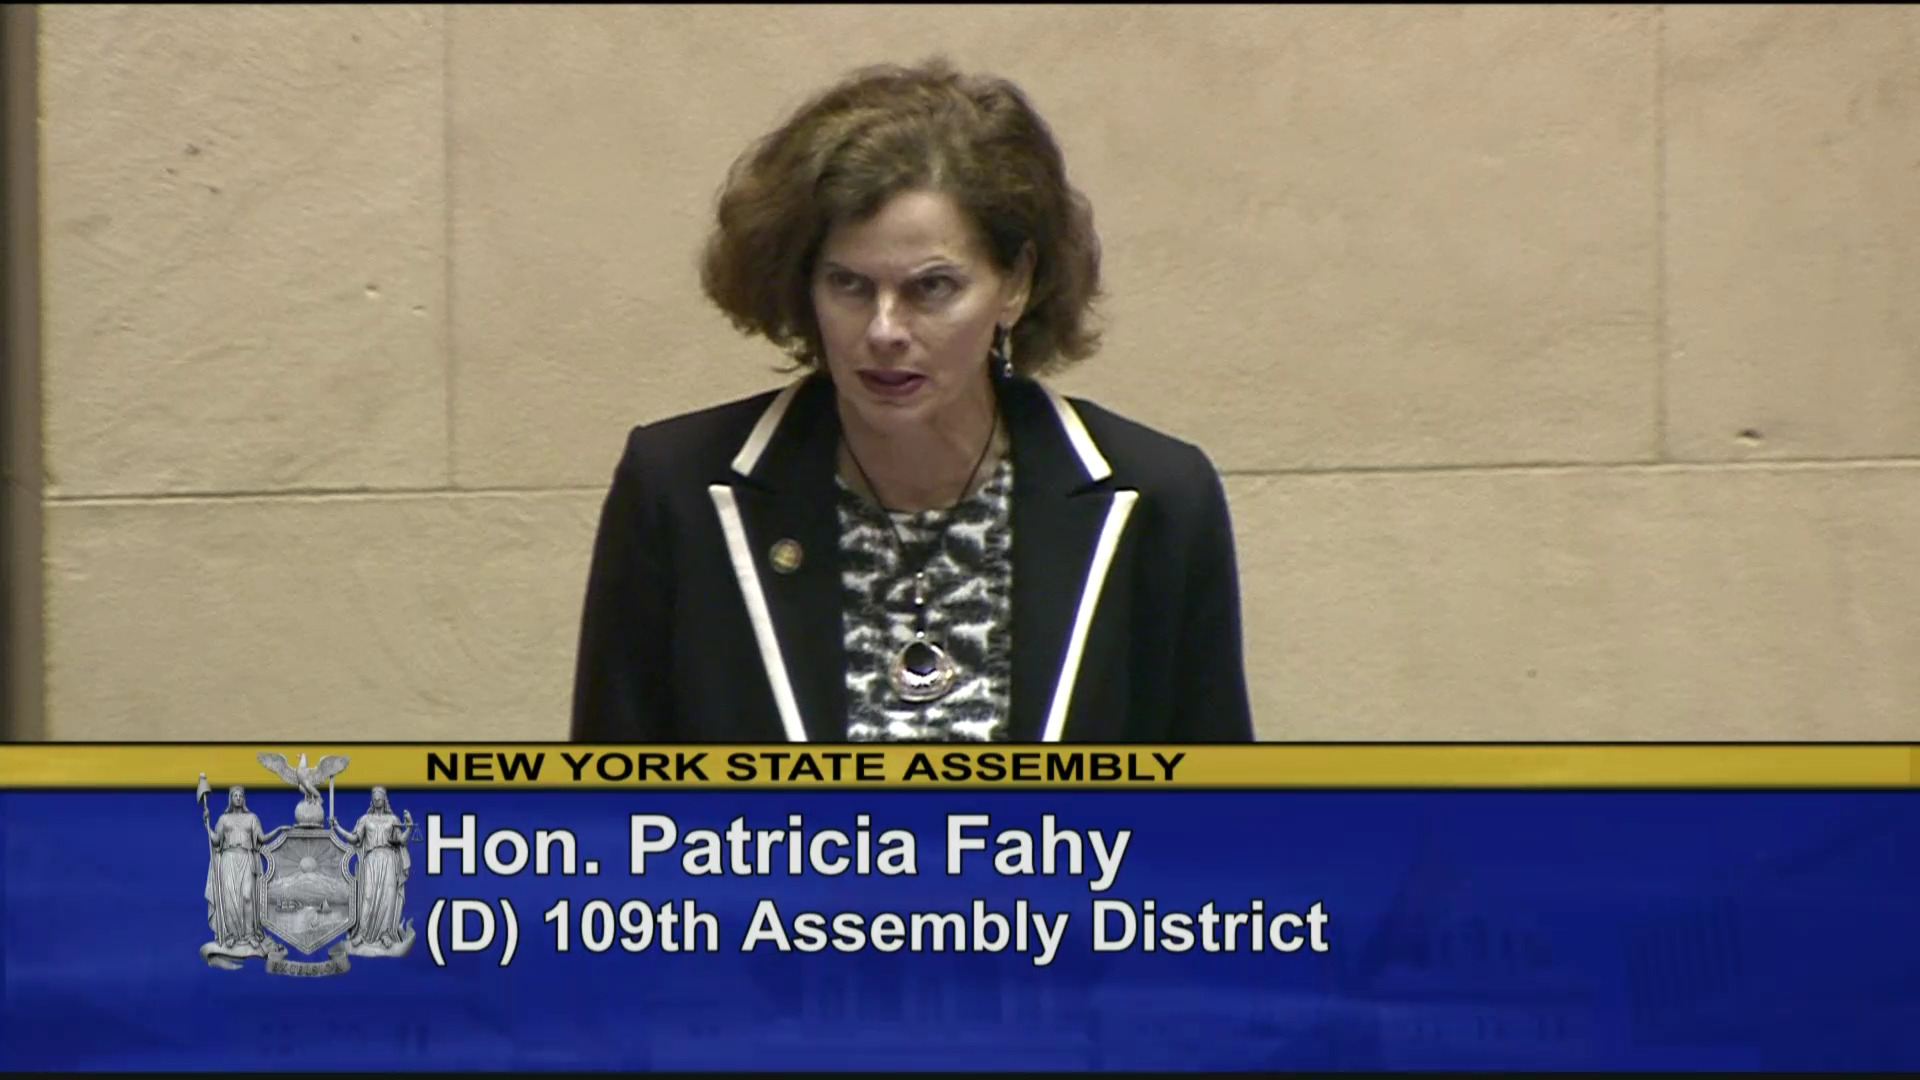 Fahy Fights to Cut New York's Carbon Emissions